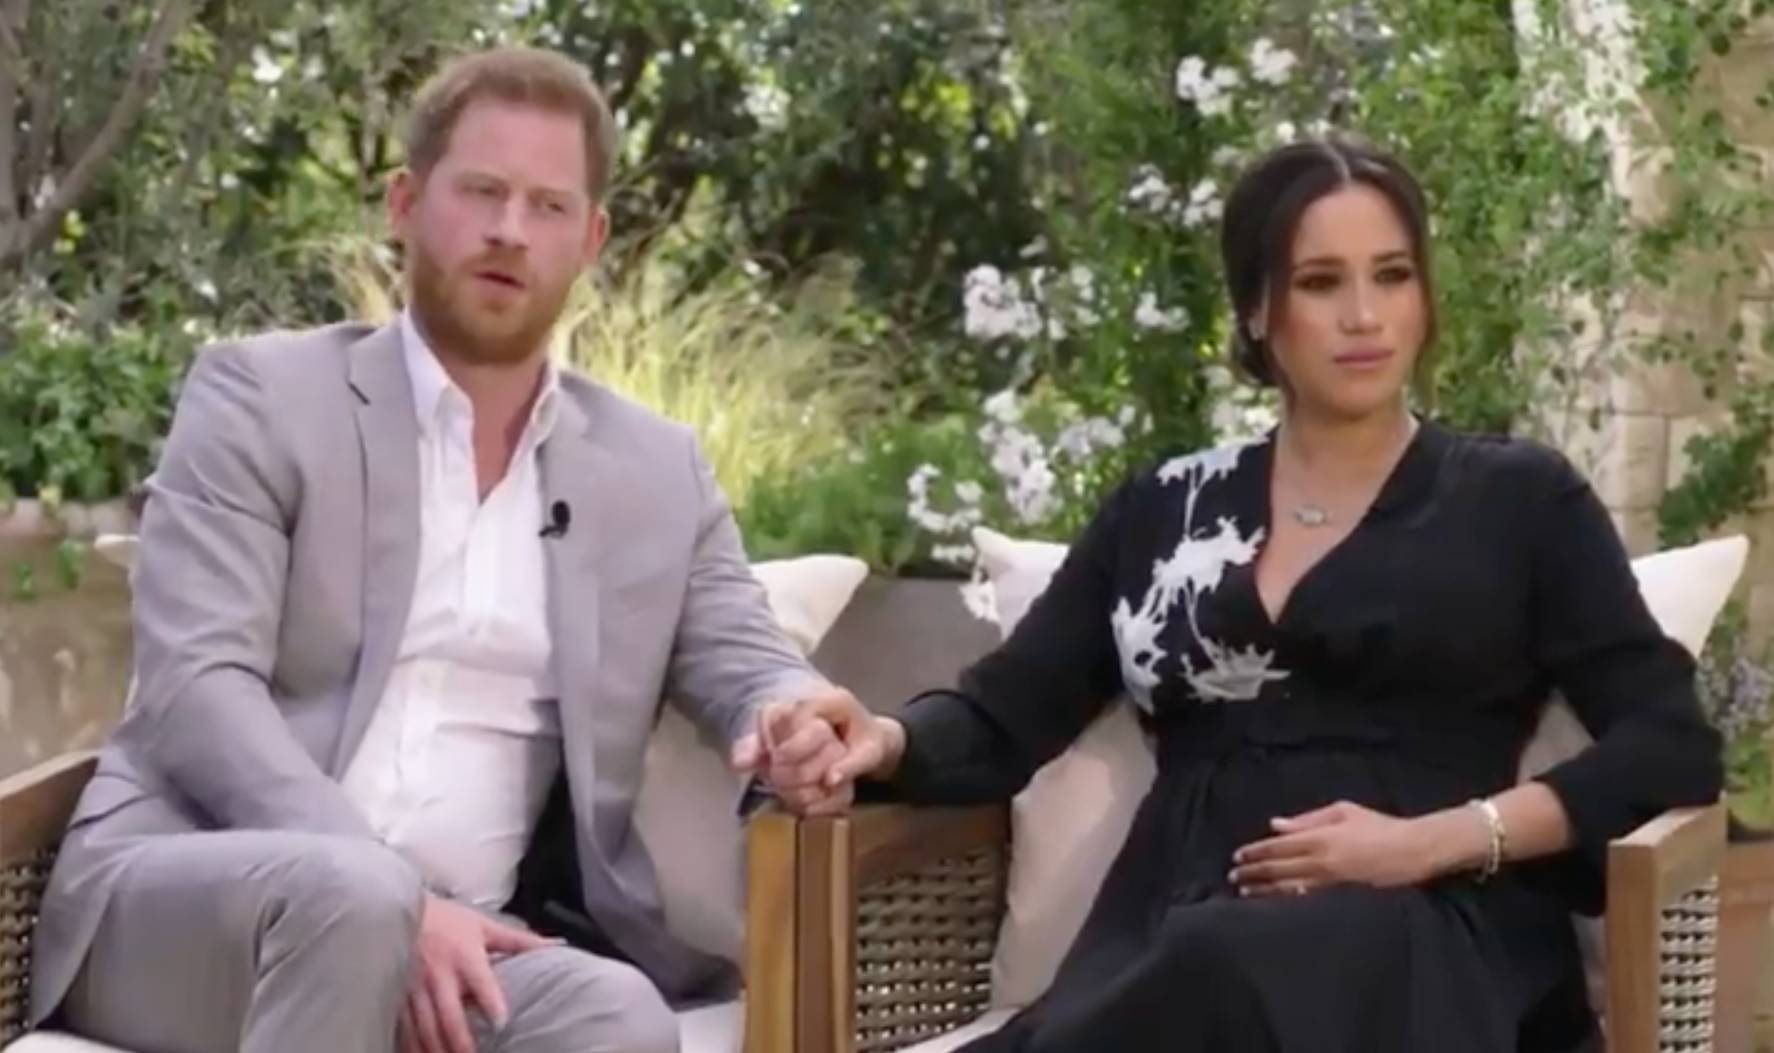 First look at Harry and Meghan's explosive Oprah tell-all